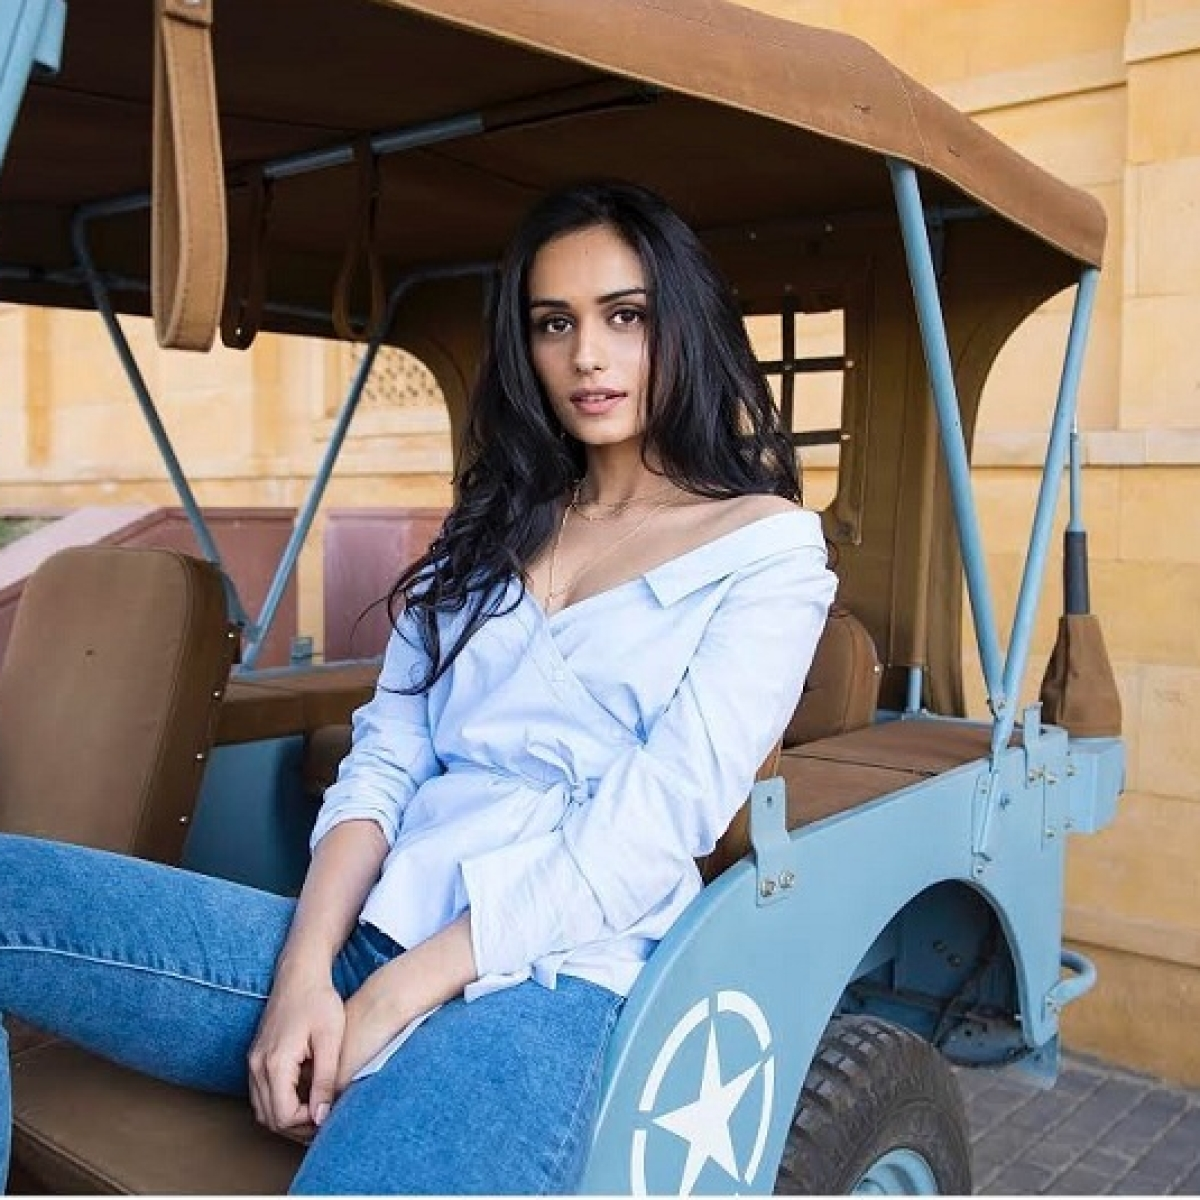 Manushi Chhillar joins global campaign to raise funds for COVID-19 relief work